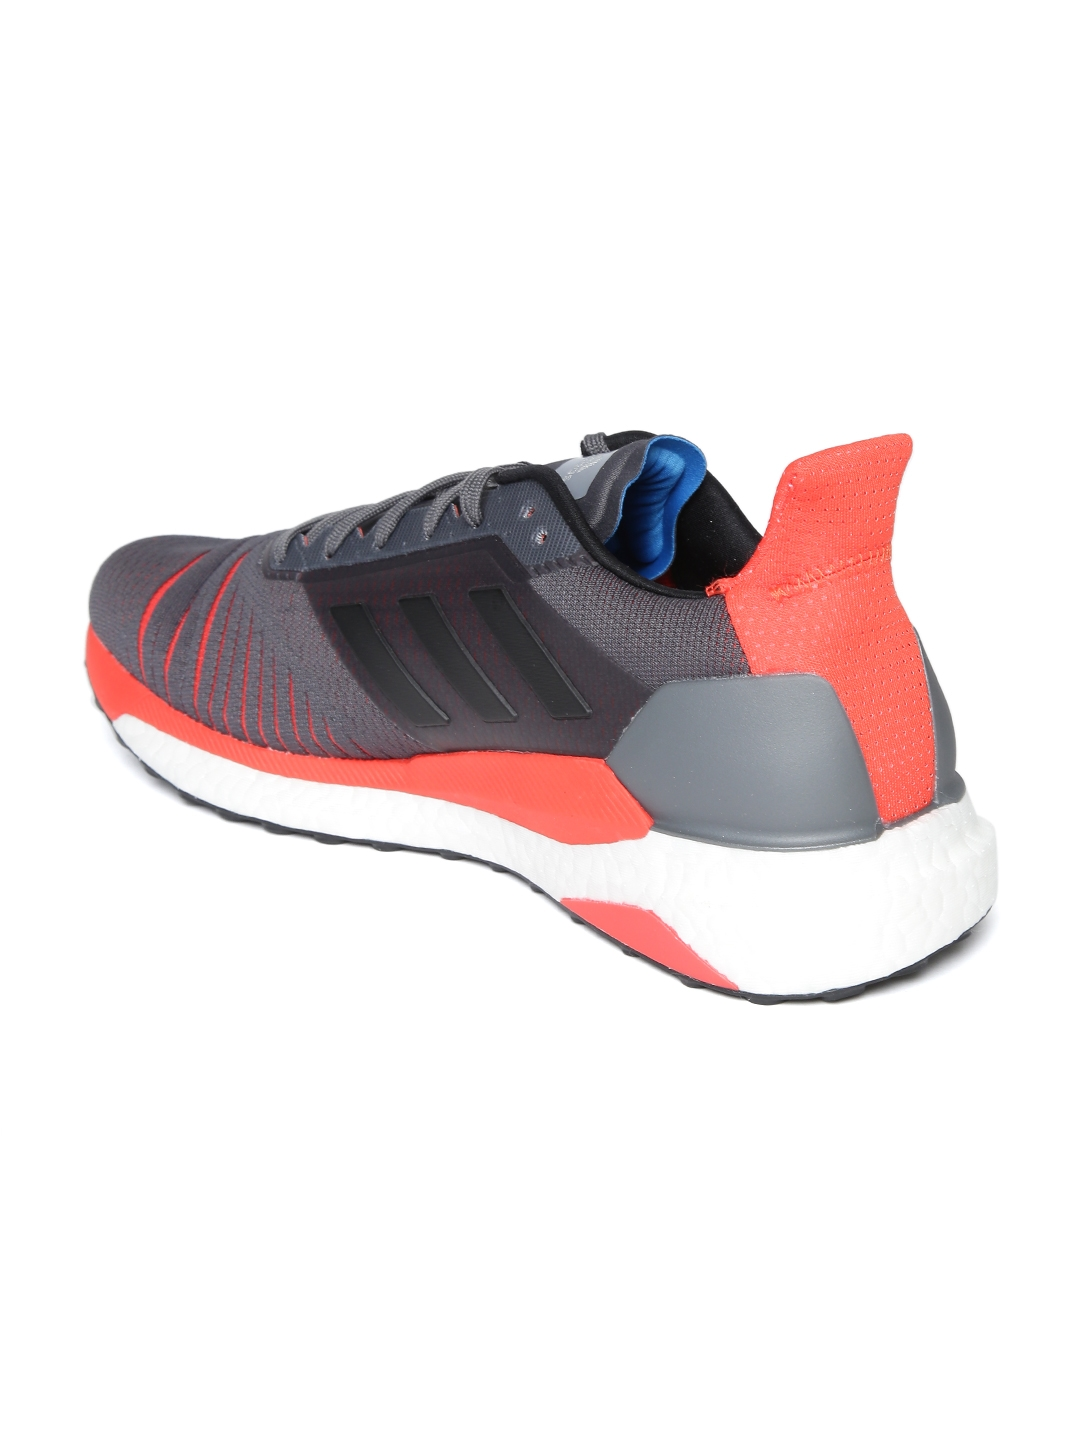 huge discount 2e38c 62721 ADIDAS Men Charcoal Grey   Coral Pink Solar Glide Running Shoes